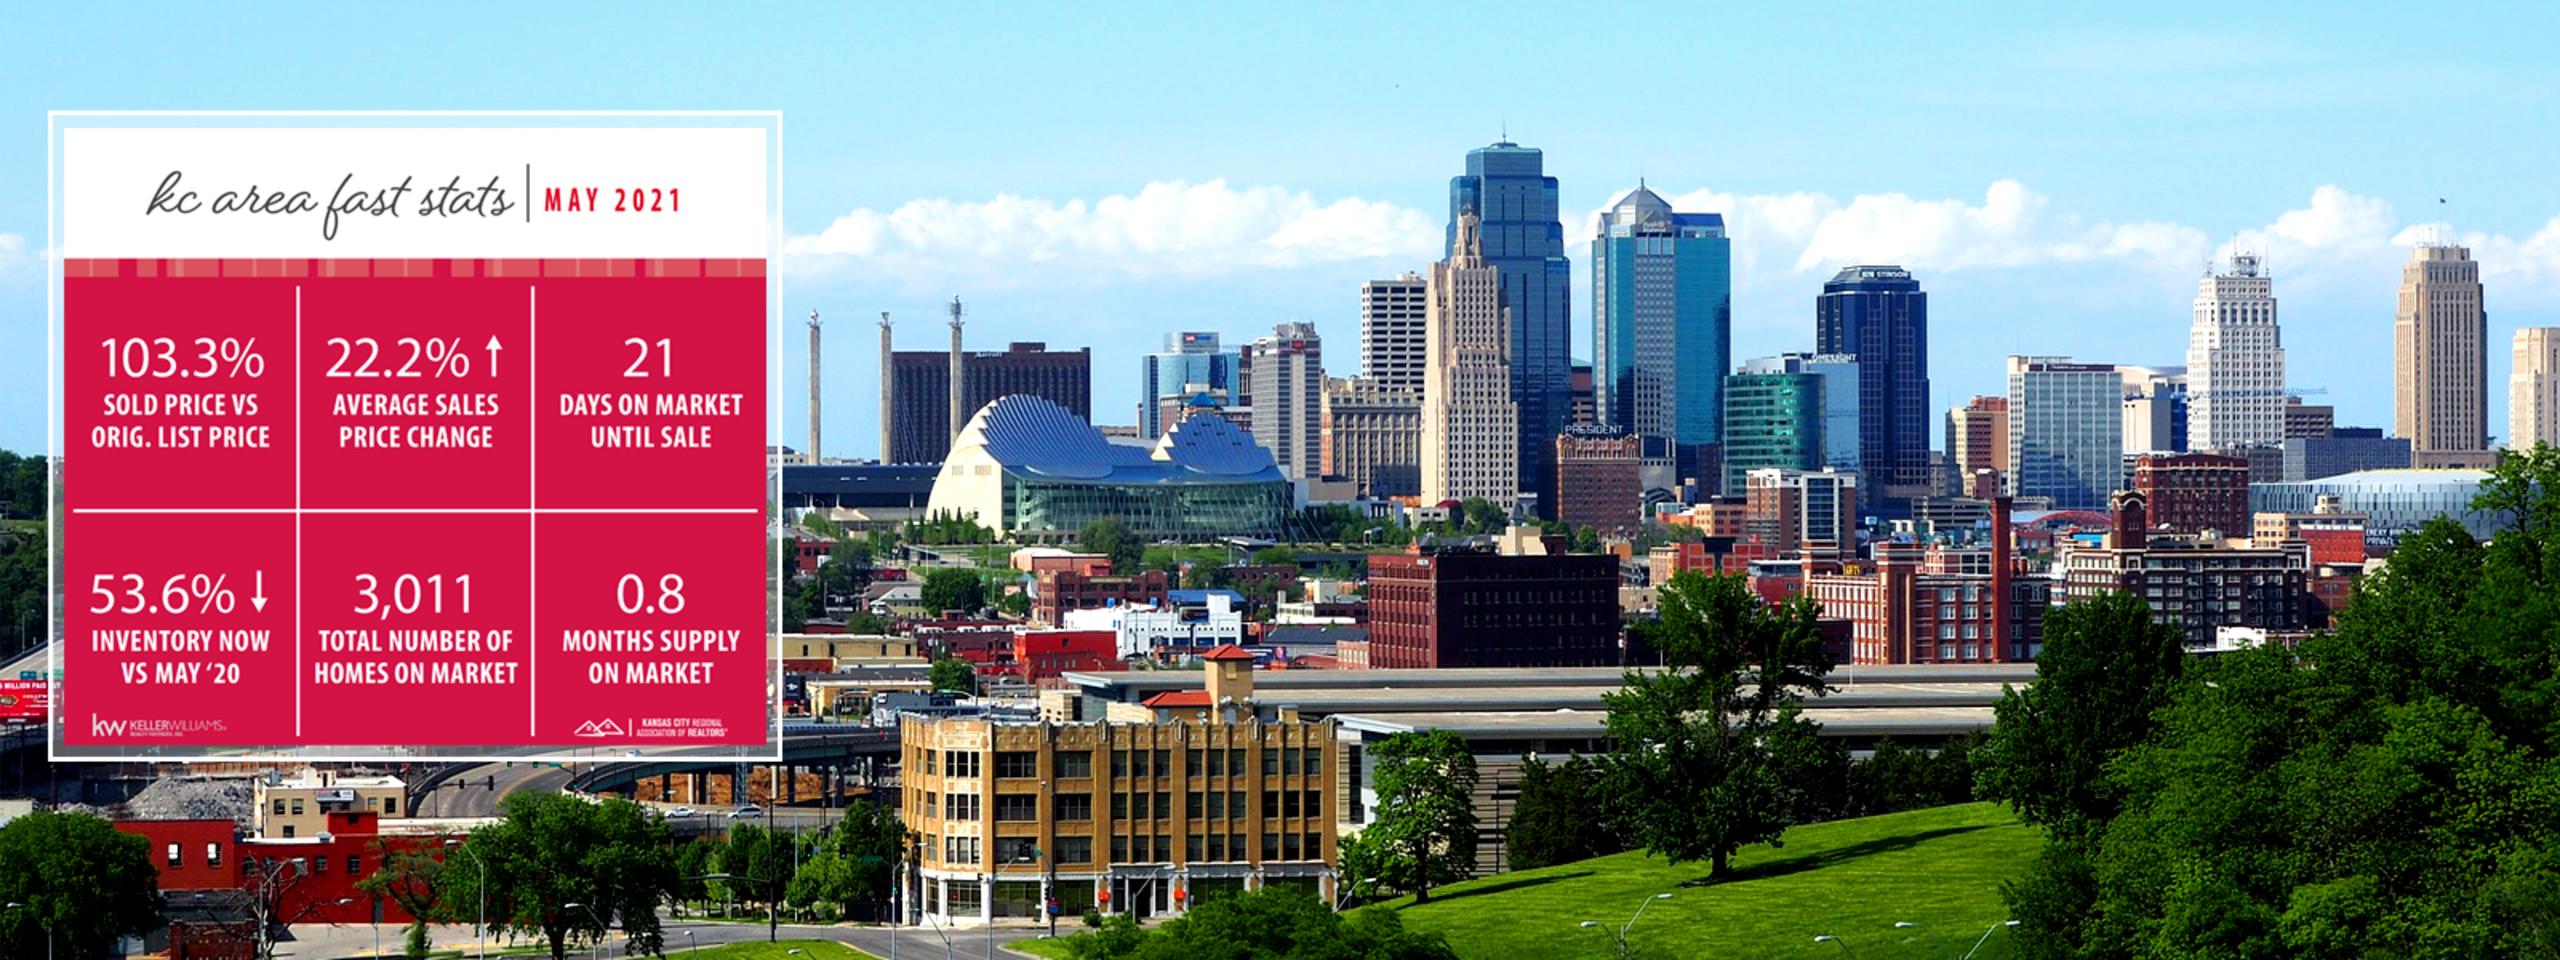 Visit our blog for KC area real estate & homeowner tips {{ CLICK HERE }}